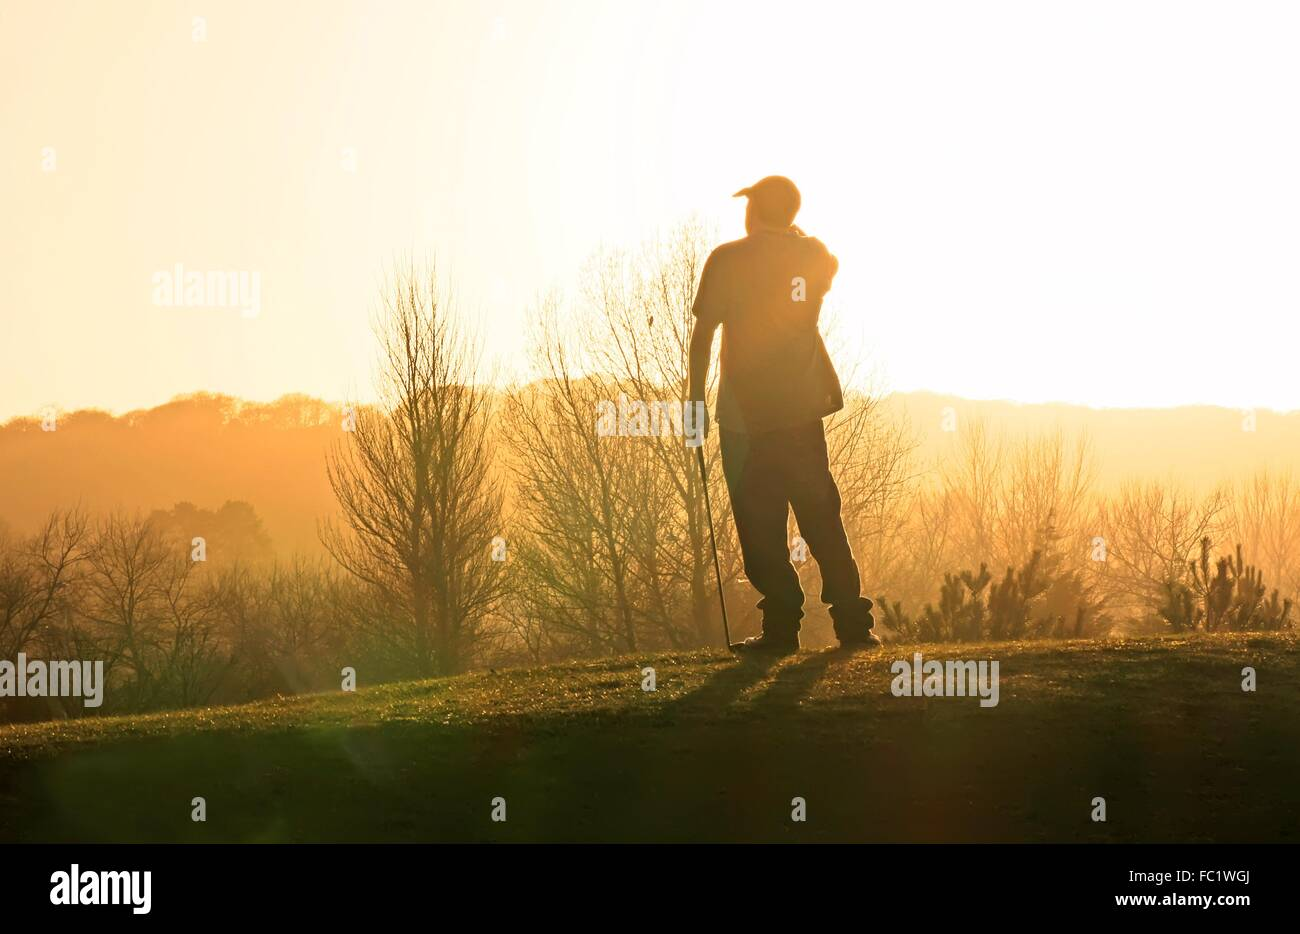 Golfer after teeing off into a sunset - Stock Image